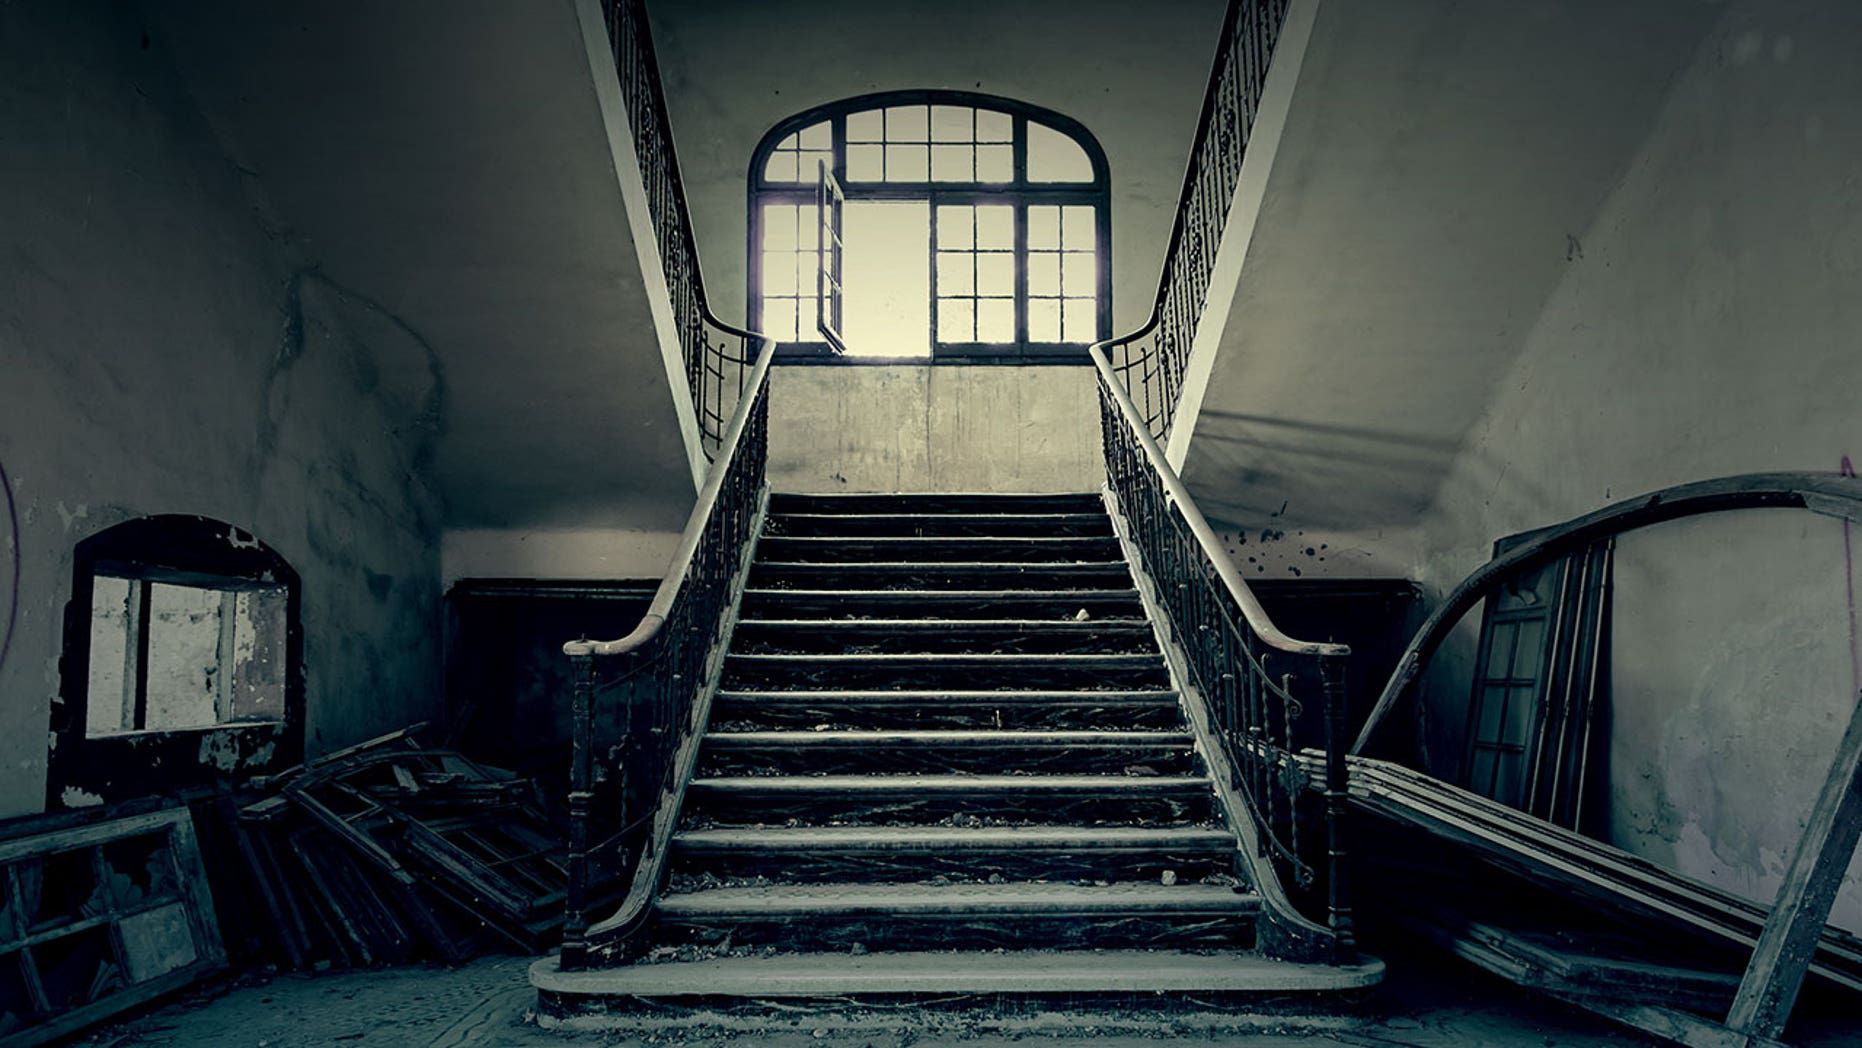 Looking to scare yourself silly? We've got just the places.